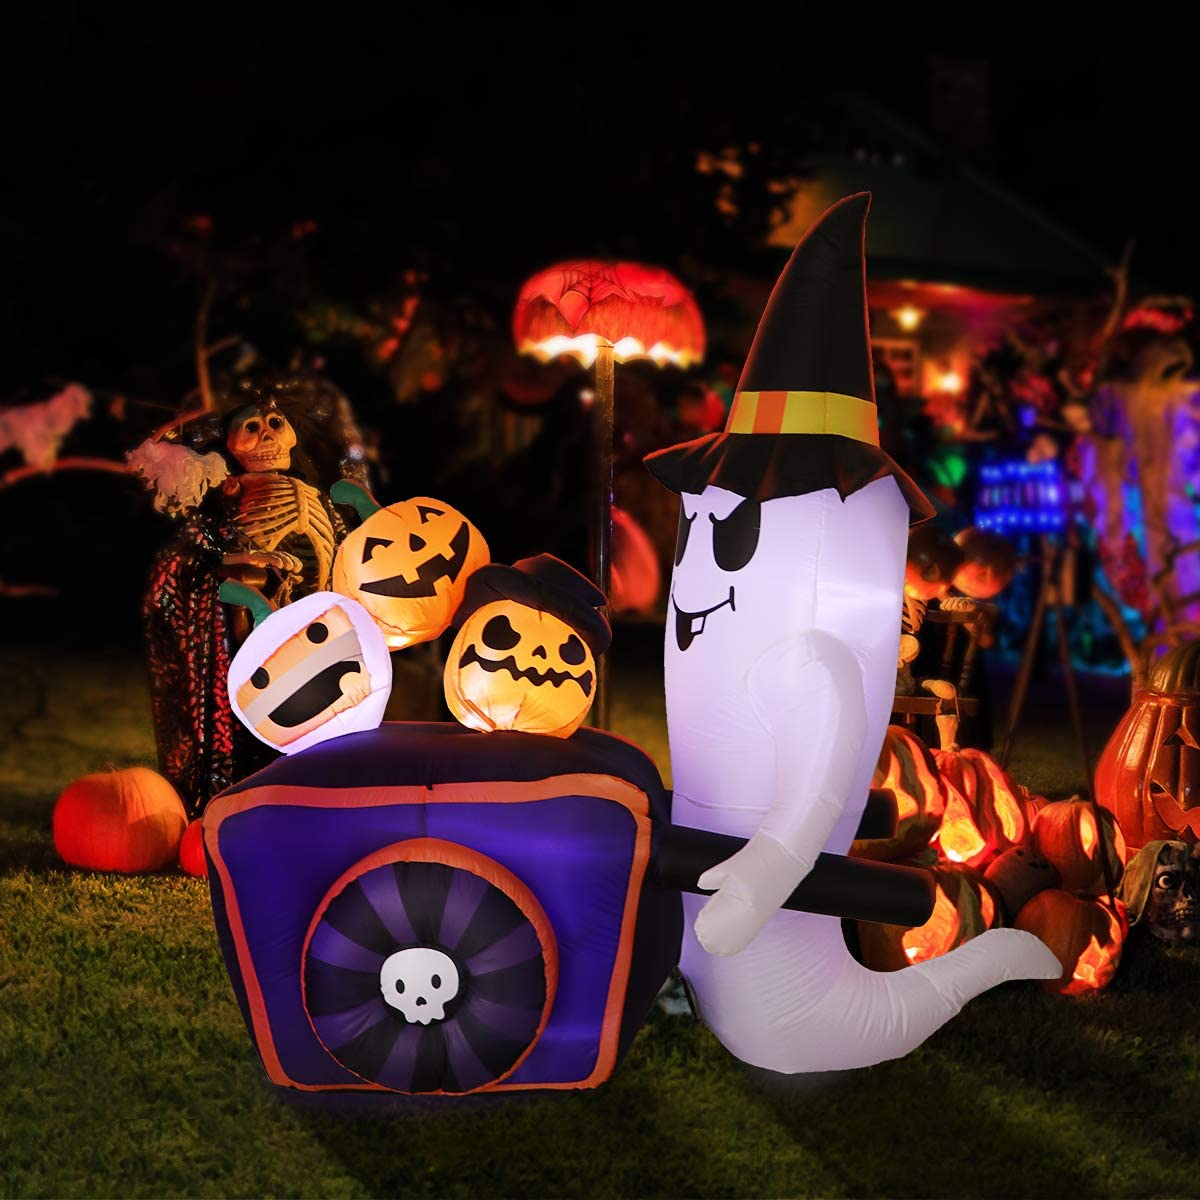 Halloween Inflatable Ghost, Lighted Inflatable Ghost with Pumpkin Cart for Home Garden Yard Lawn Halloween Decoration